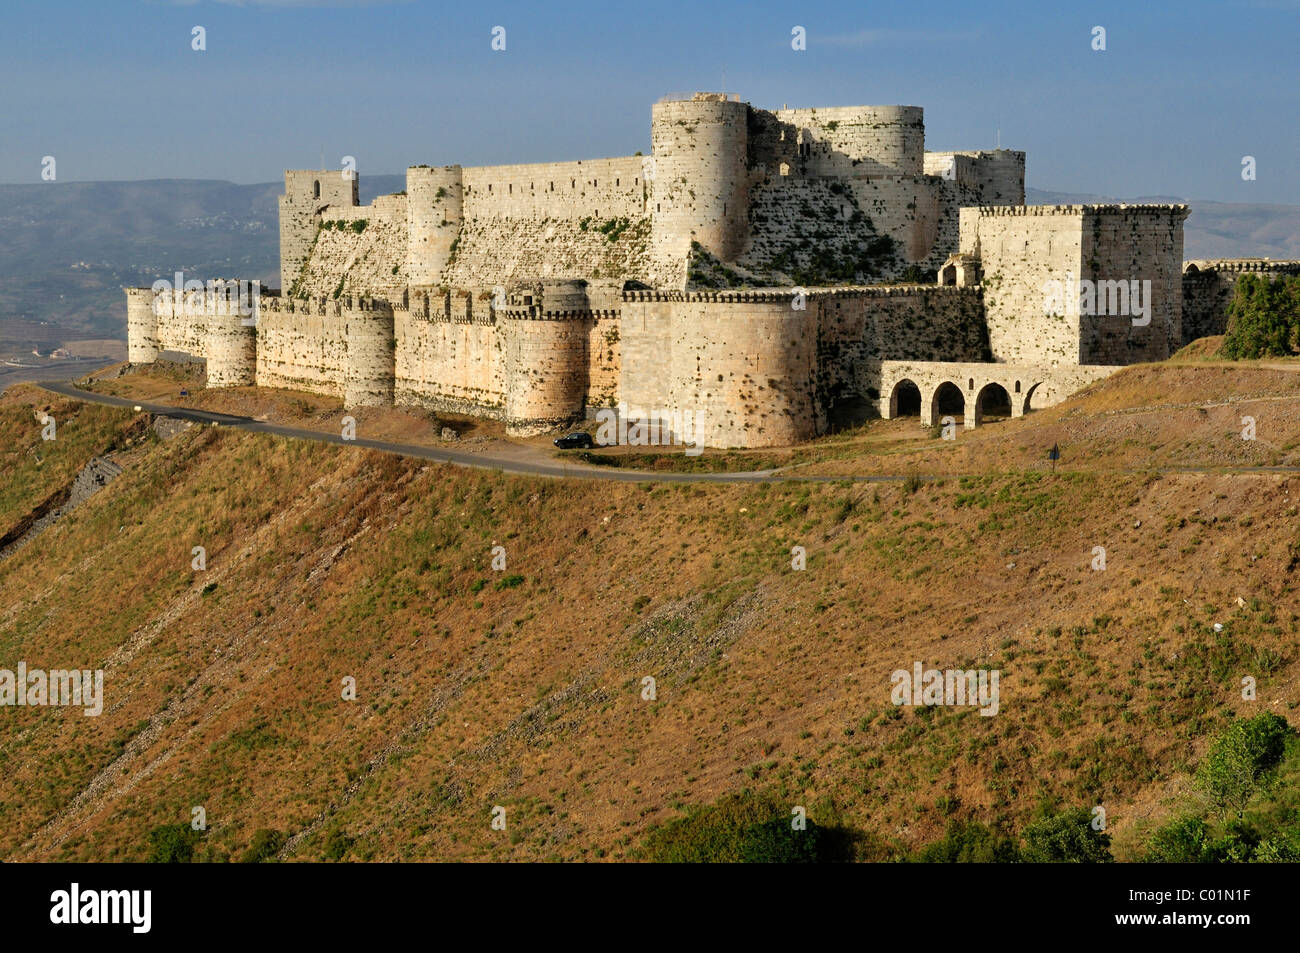 Crusader fortress Crac, Krak des Chevaliers, Qalaat al Husn, Hisn, Unesco World Heritage Site, Syria, Middle East, - Stock Image